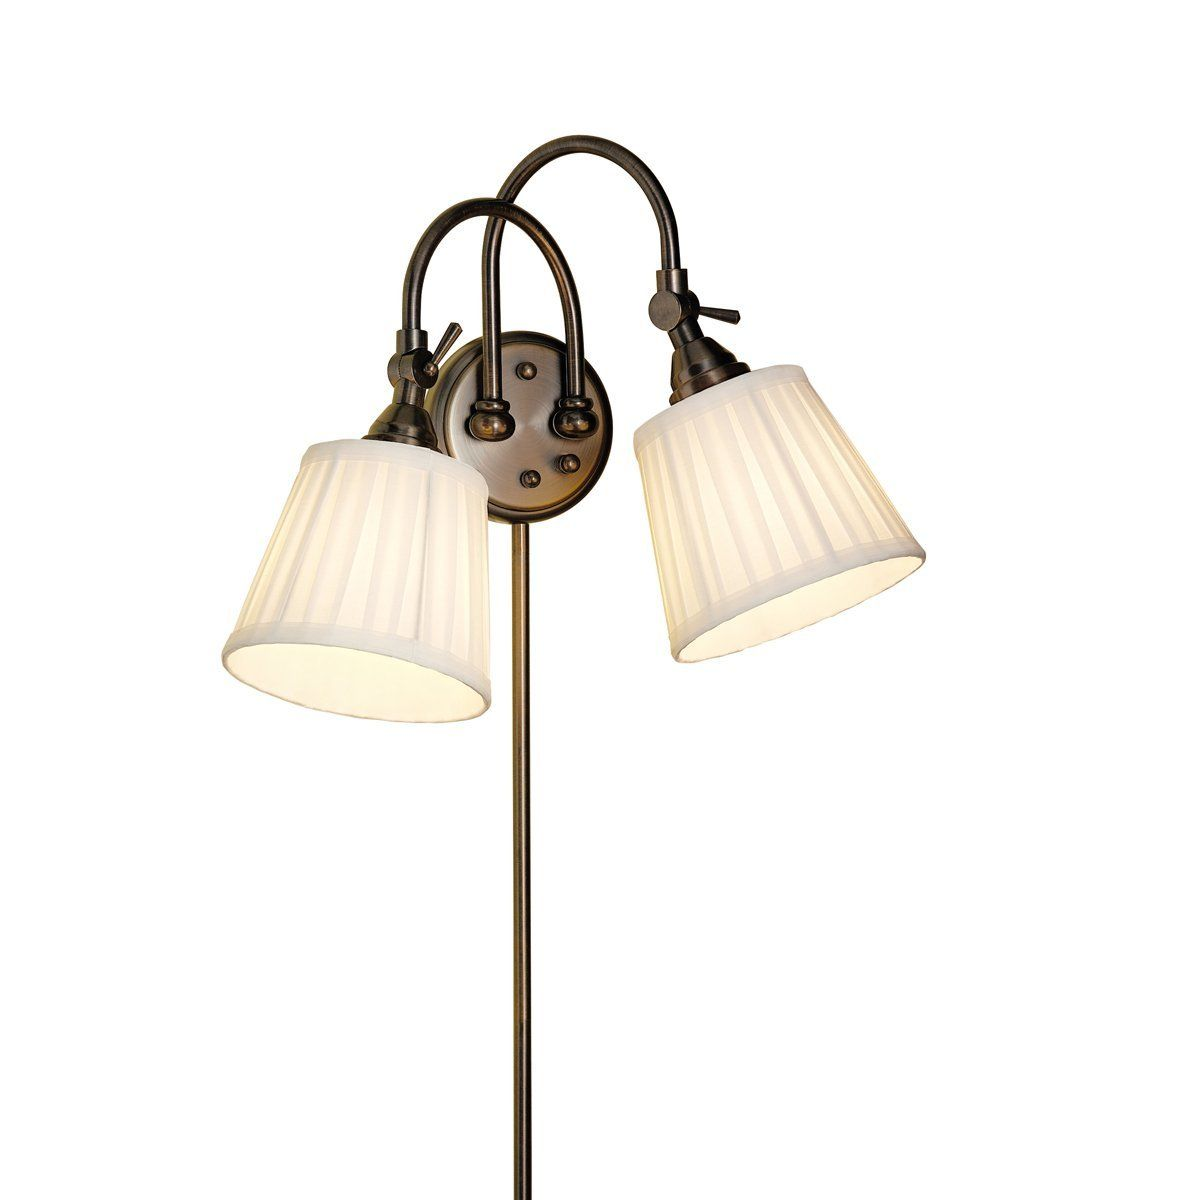 Kichler lighting 78012bbz blaine 36 inch portable adjustable 2 light kichler lighting 78012bbz blaine 36 inch portable adjustable 2 light wall sconce burnished aloadofball Image collections